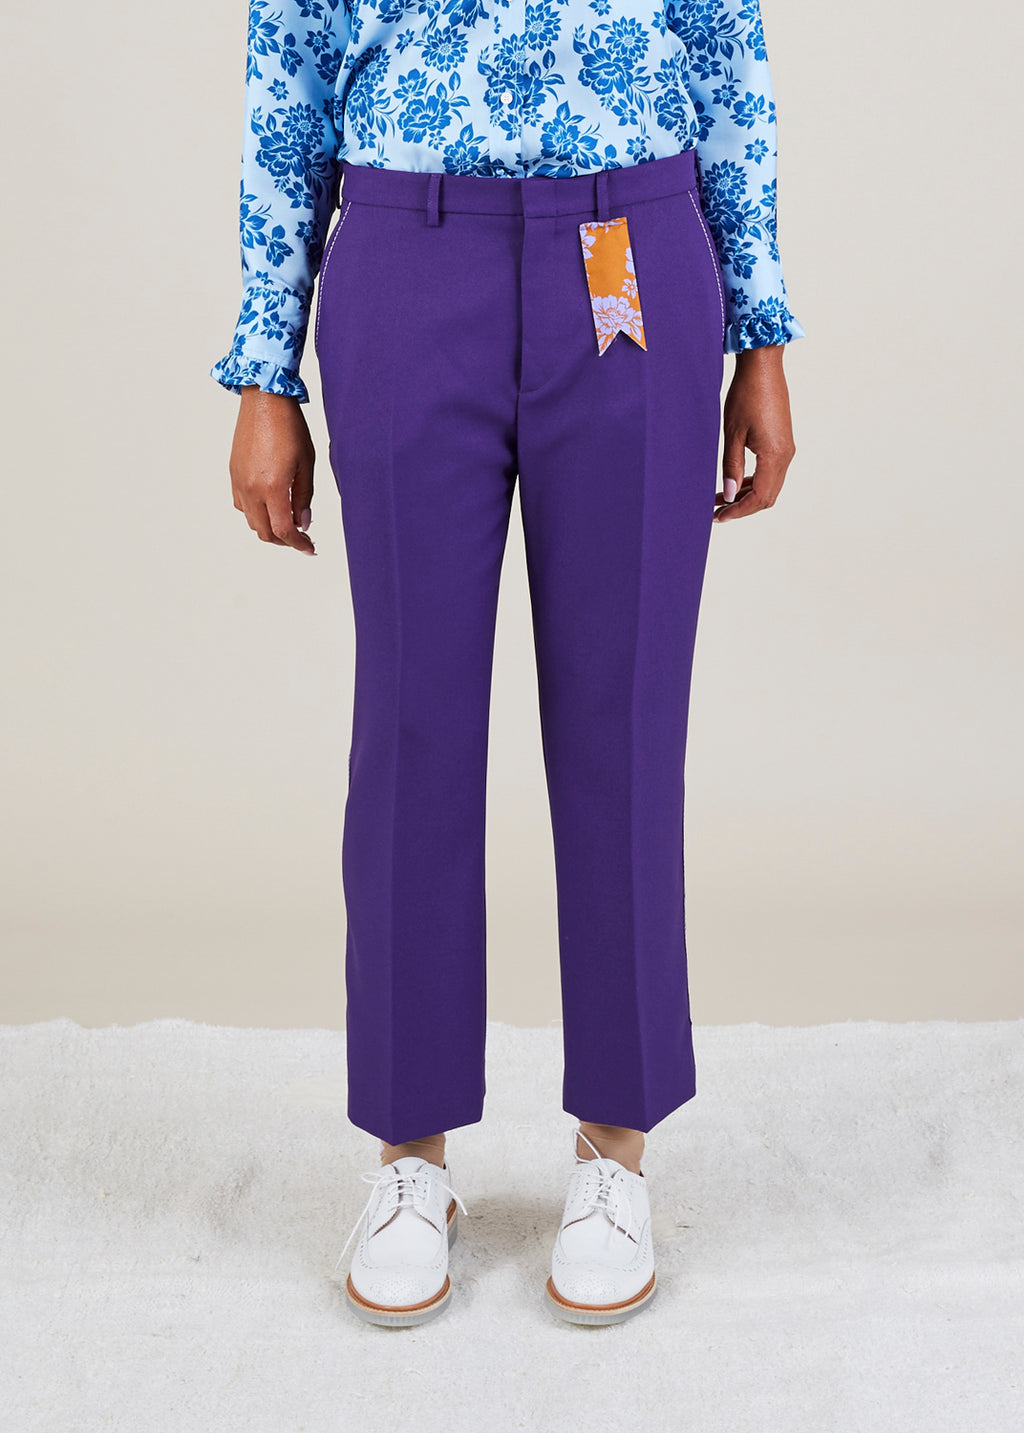 The Gigi Sonia Crop Trouser